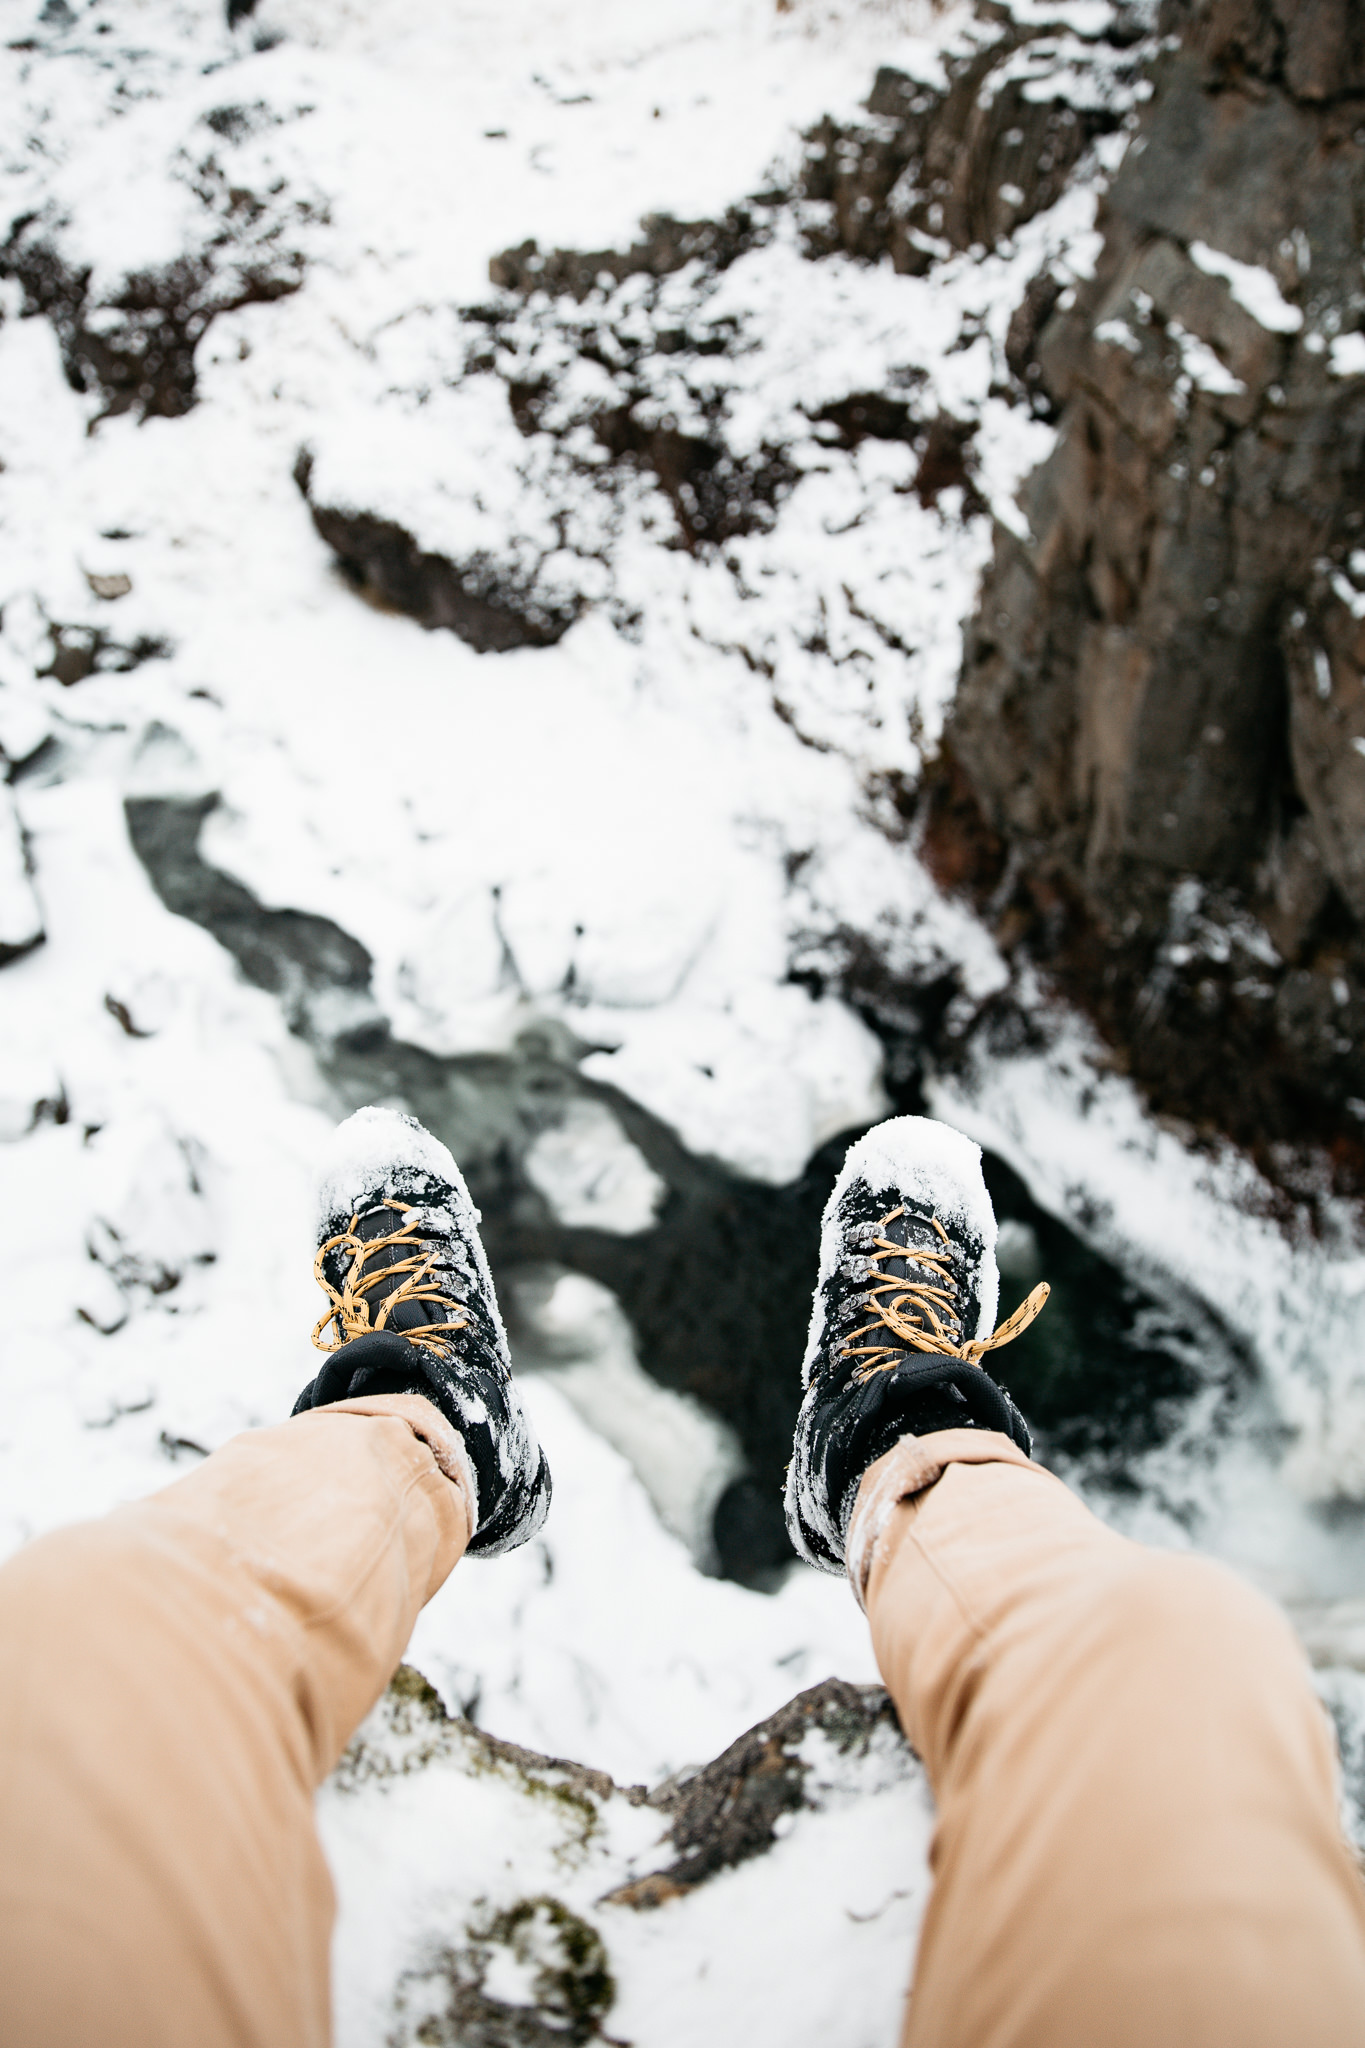 Feet with hiking boots over private waterfall in Iceland during winter